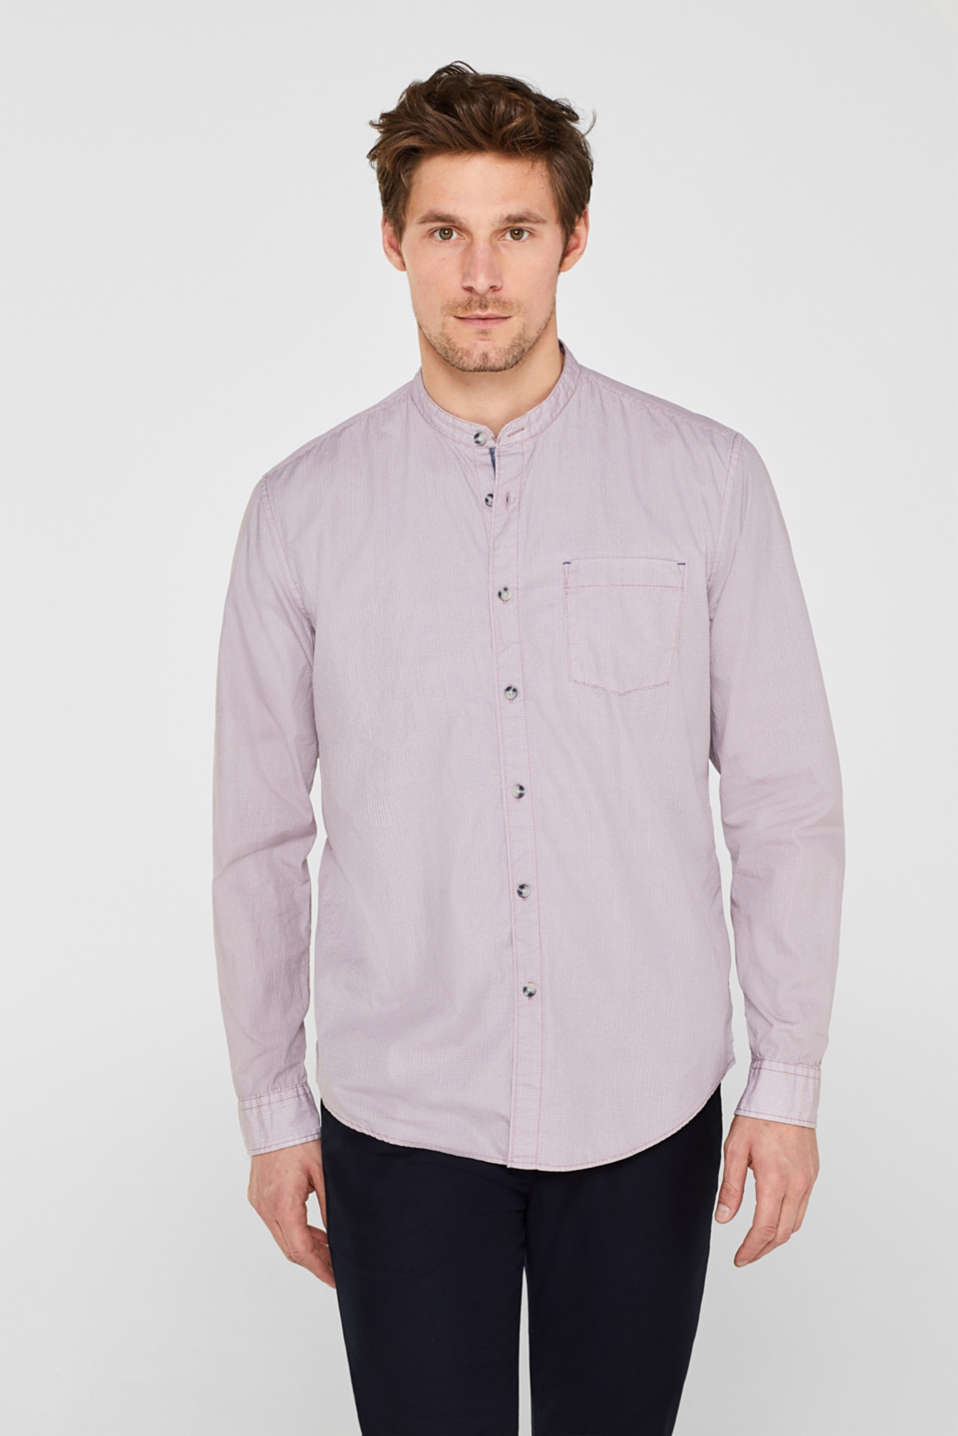 edc - Print shirt with a stand-up collar, 100% cotton